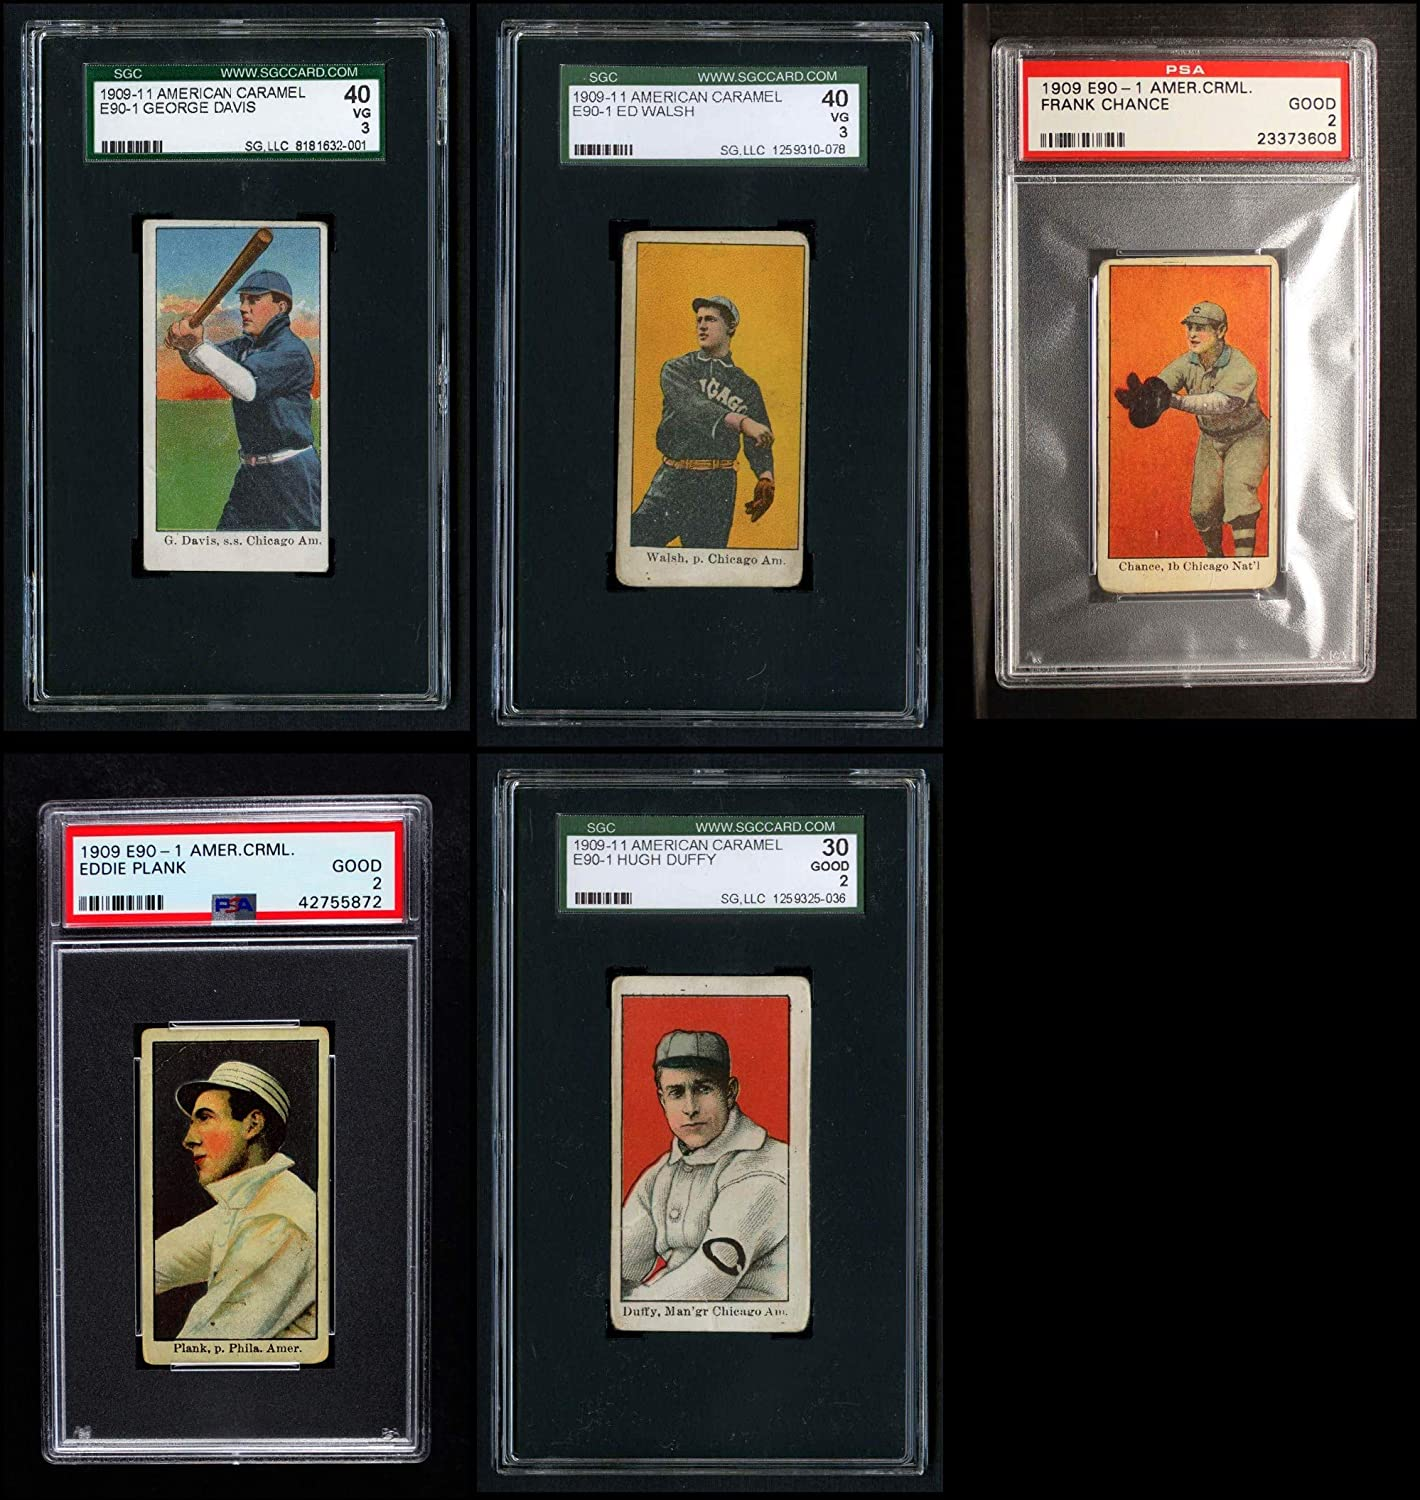 1909 E90-1 American Caramel Partial Complete Set (Baseball Set) Dean's Cards 2.5 - GD+ 91GWECI13iLSL1500_